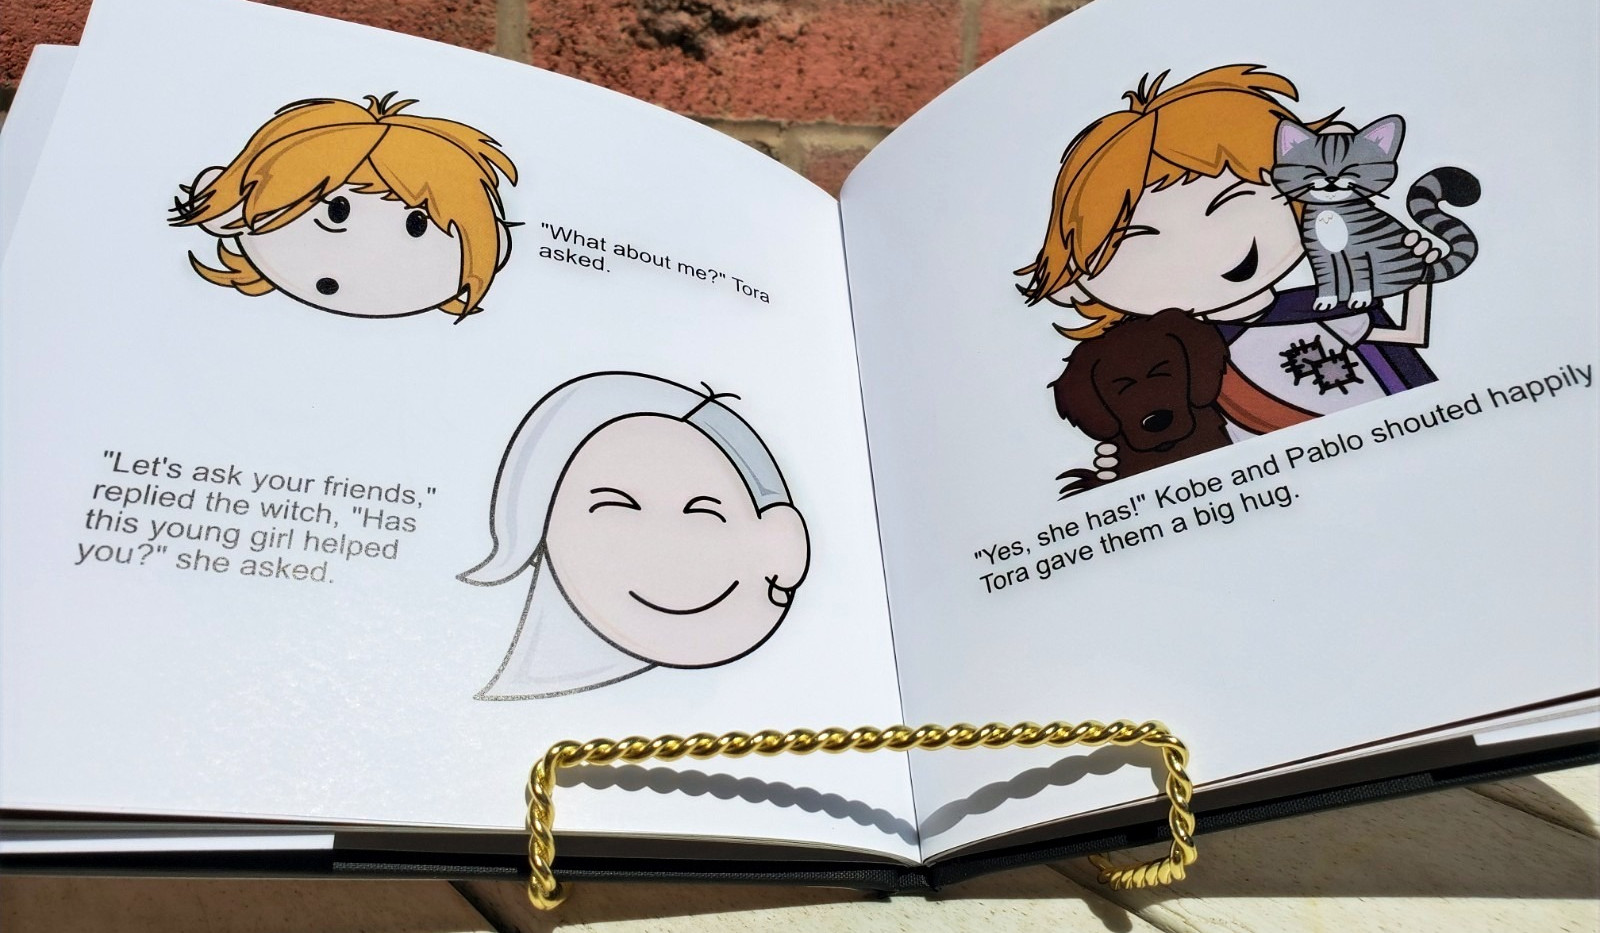 The custom female version of the storybook is open with pictures of the main femal character and a dog and cat.